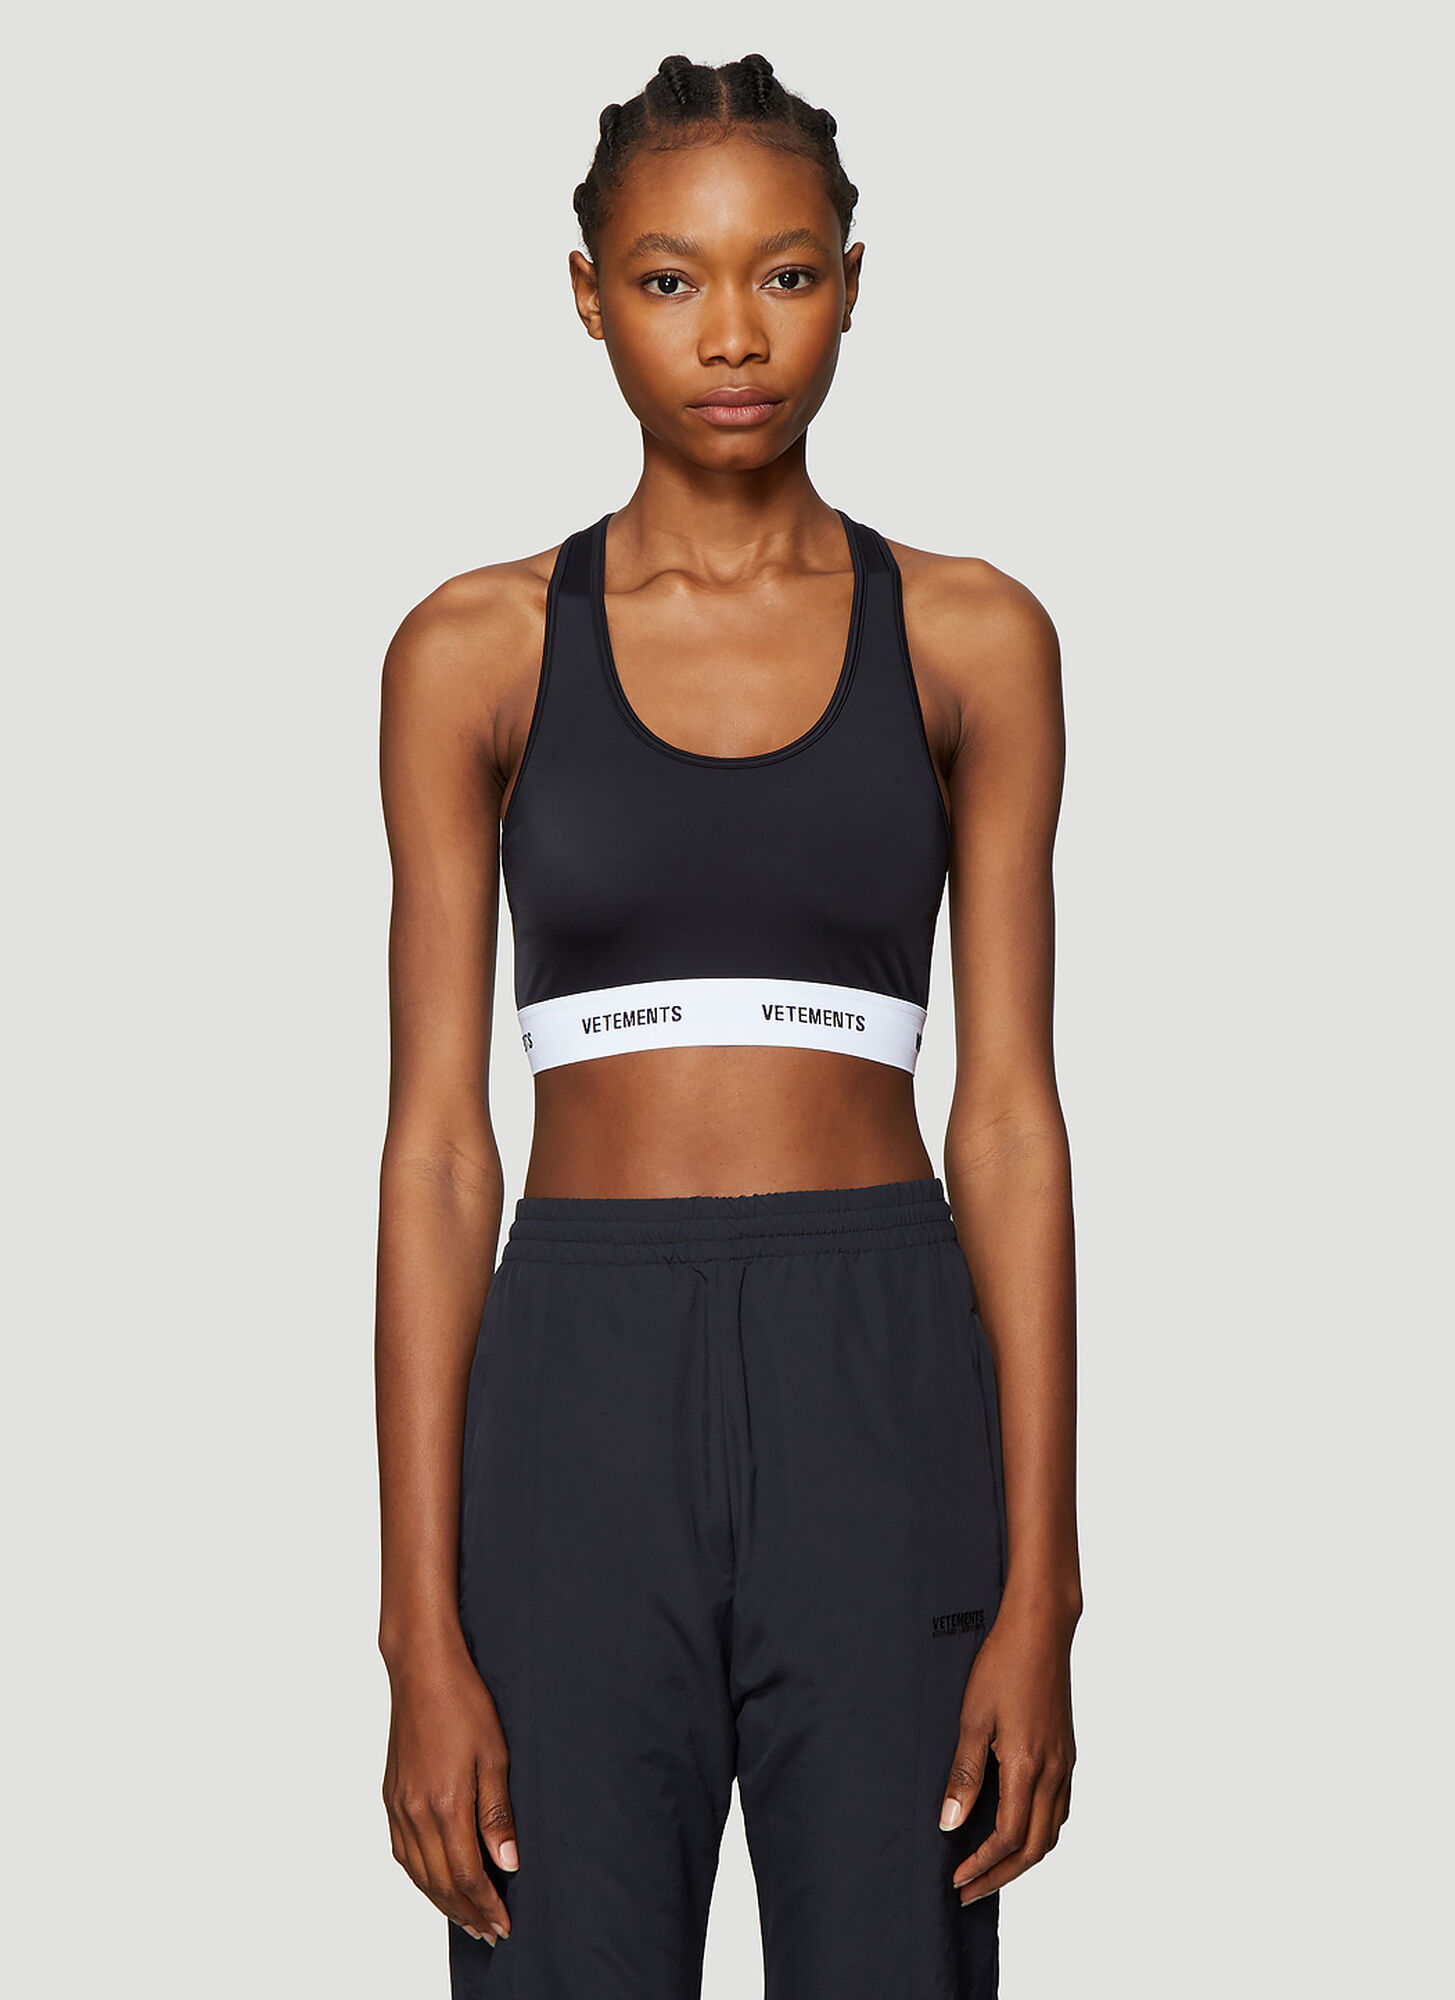 Vetements Scoop Neck Crop Top in Black